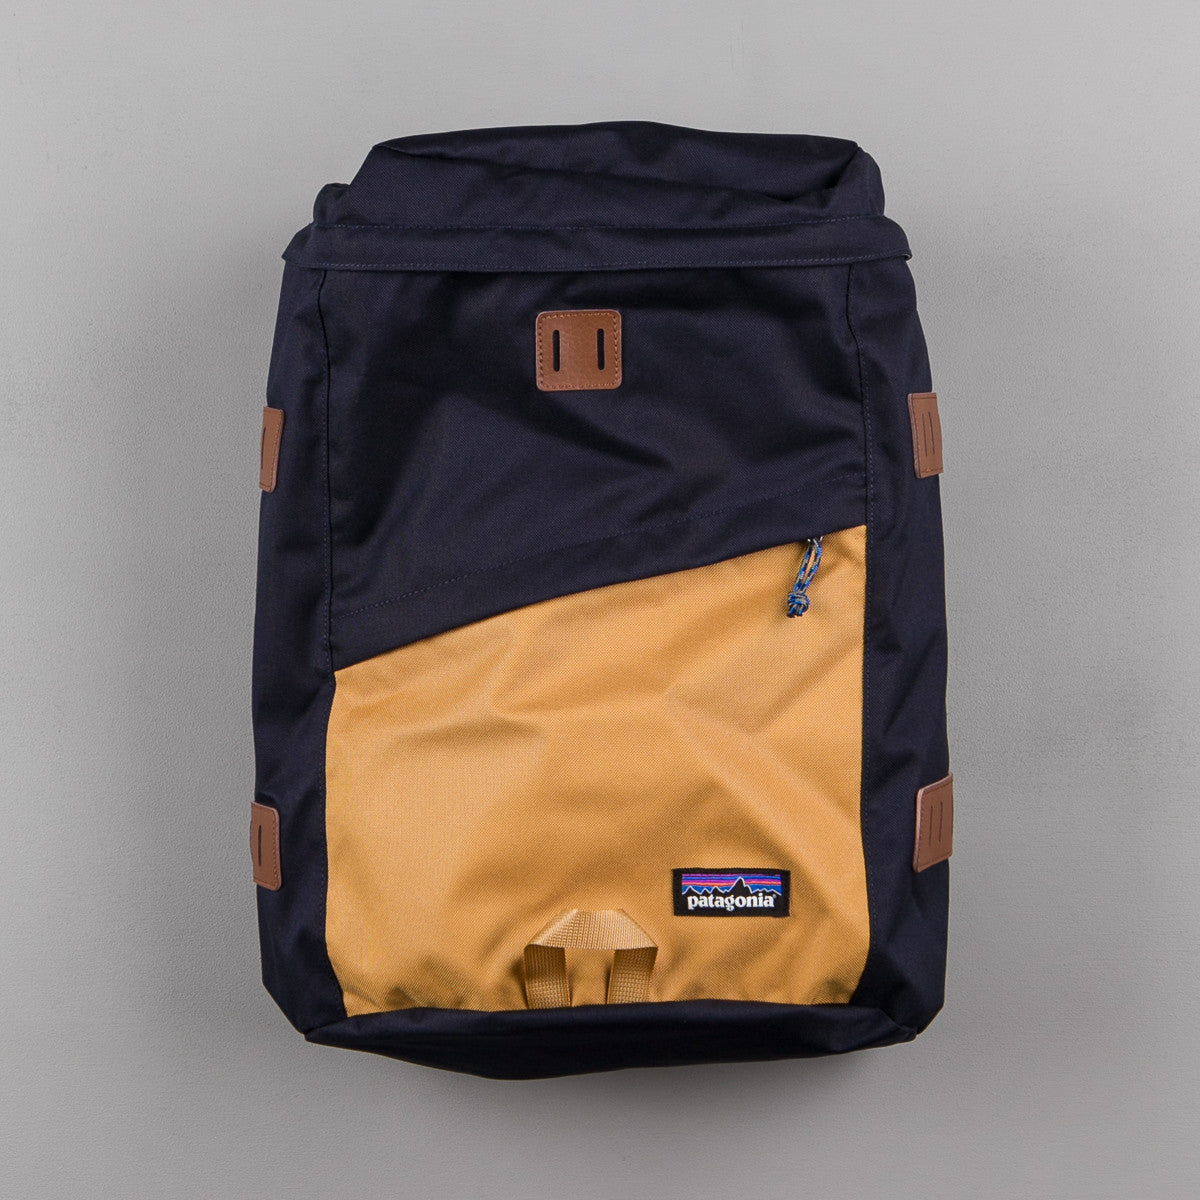 Patagonia Toromiro Backpack - Navy Blue